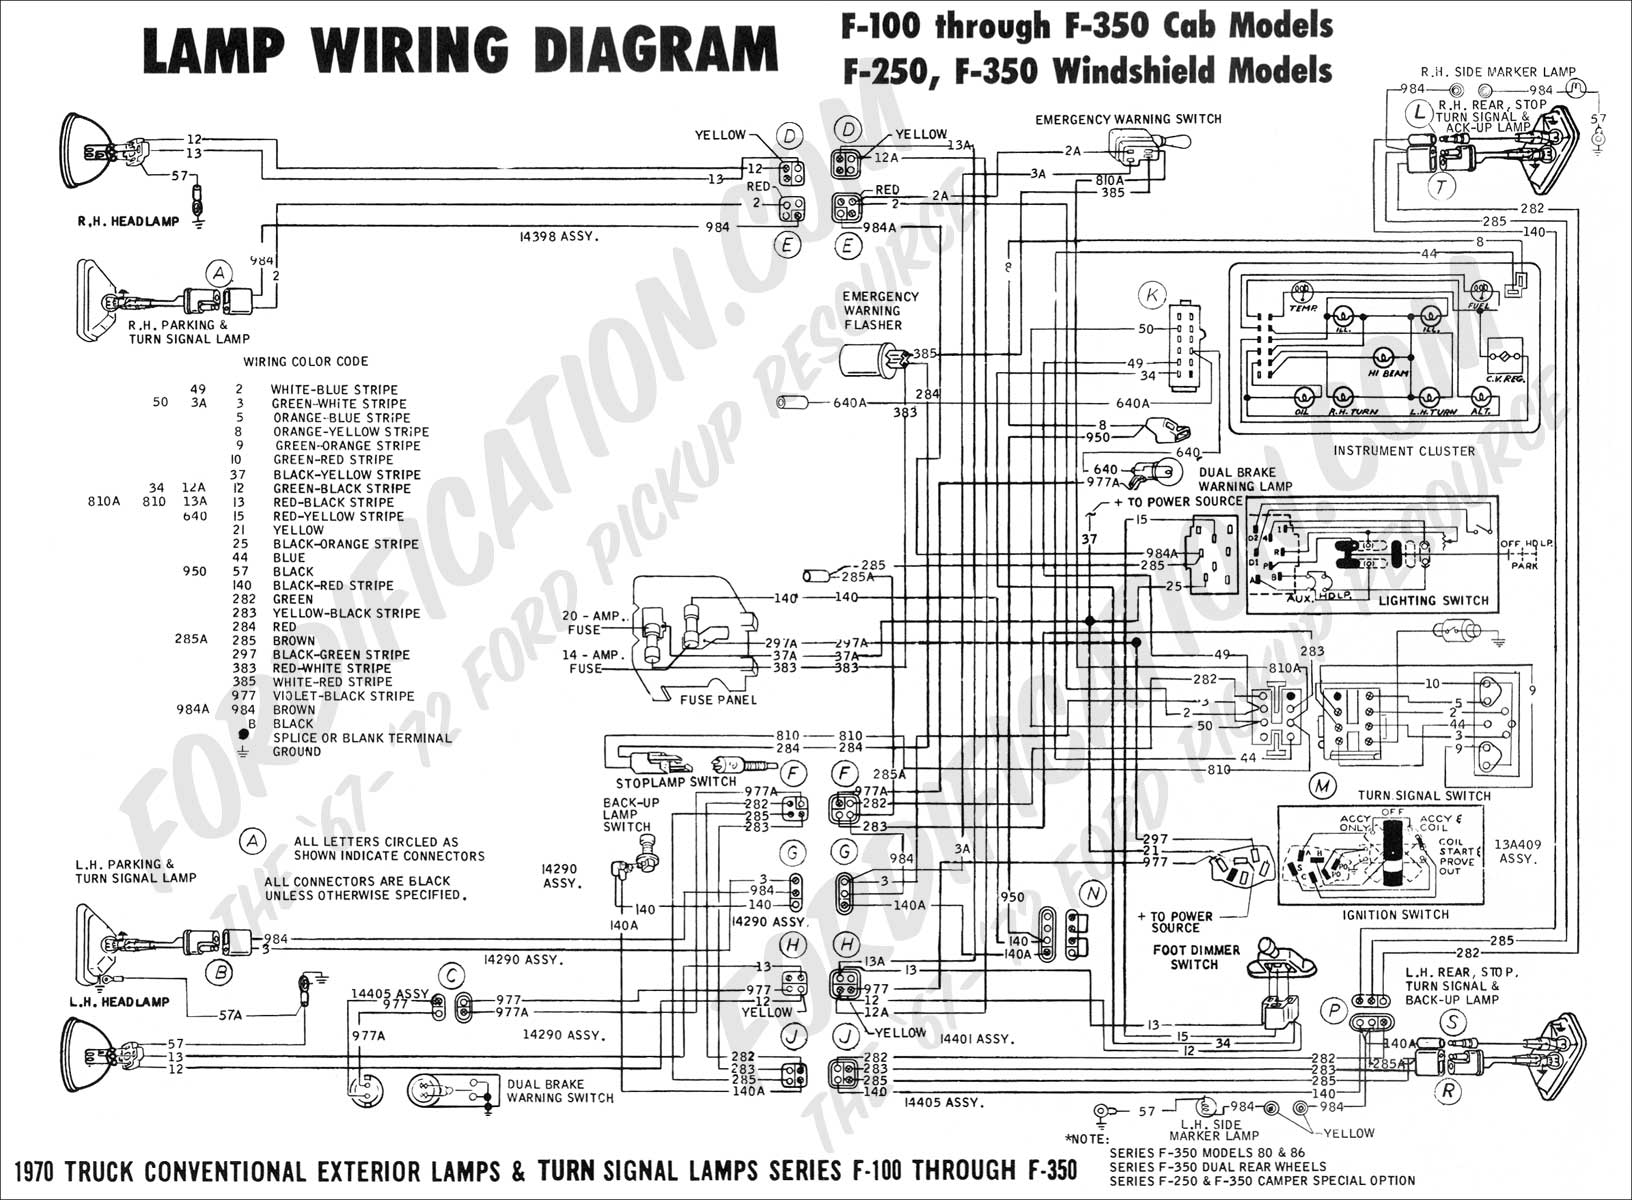 48259 Another Tachometer Thread together with Electronic Ignition Diagram additionally Installing A SPY 5000 Two Way Motorcycle Alarm Int additionally Kawasaki Vulcan Vn750 Electrical System And Wiring Diagram besides Headlight Relay Circuit Description. on transistor ignition system